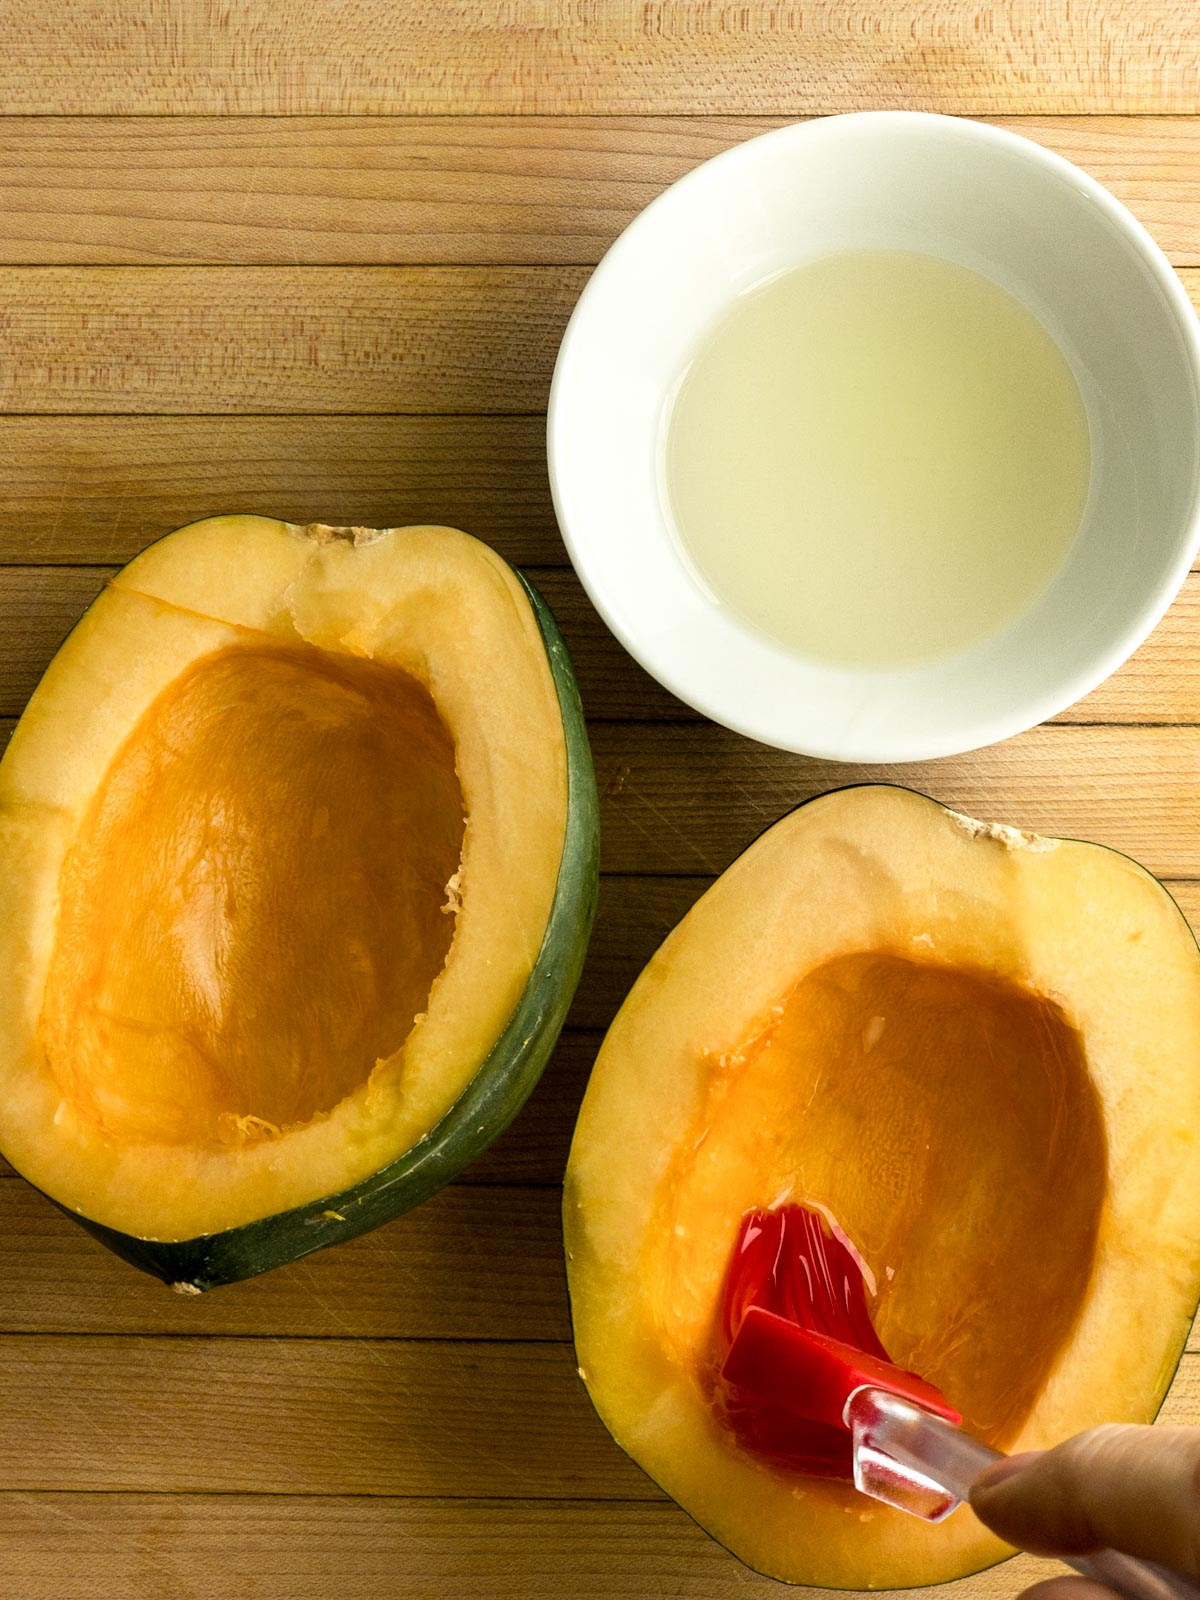 Brush oil on the skin of acorn squash